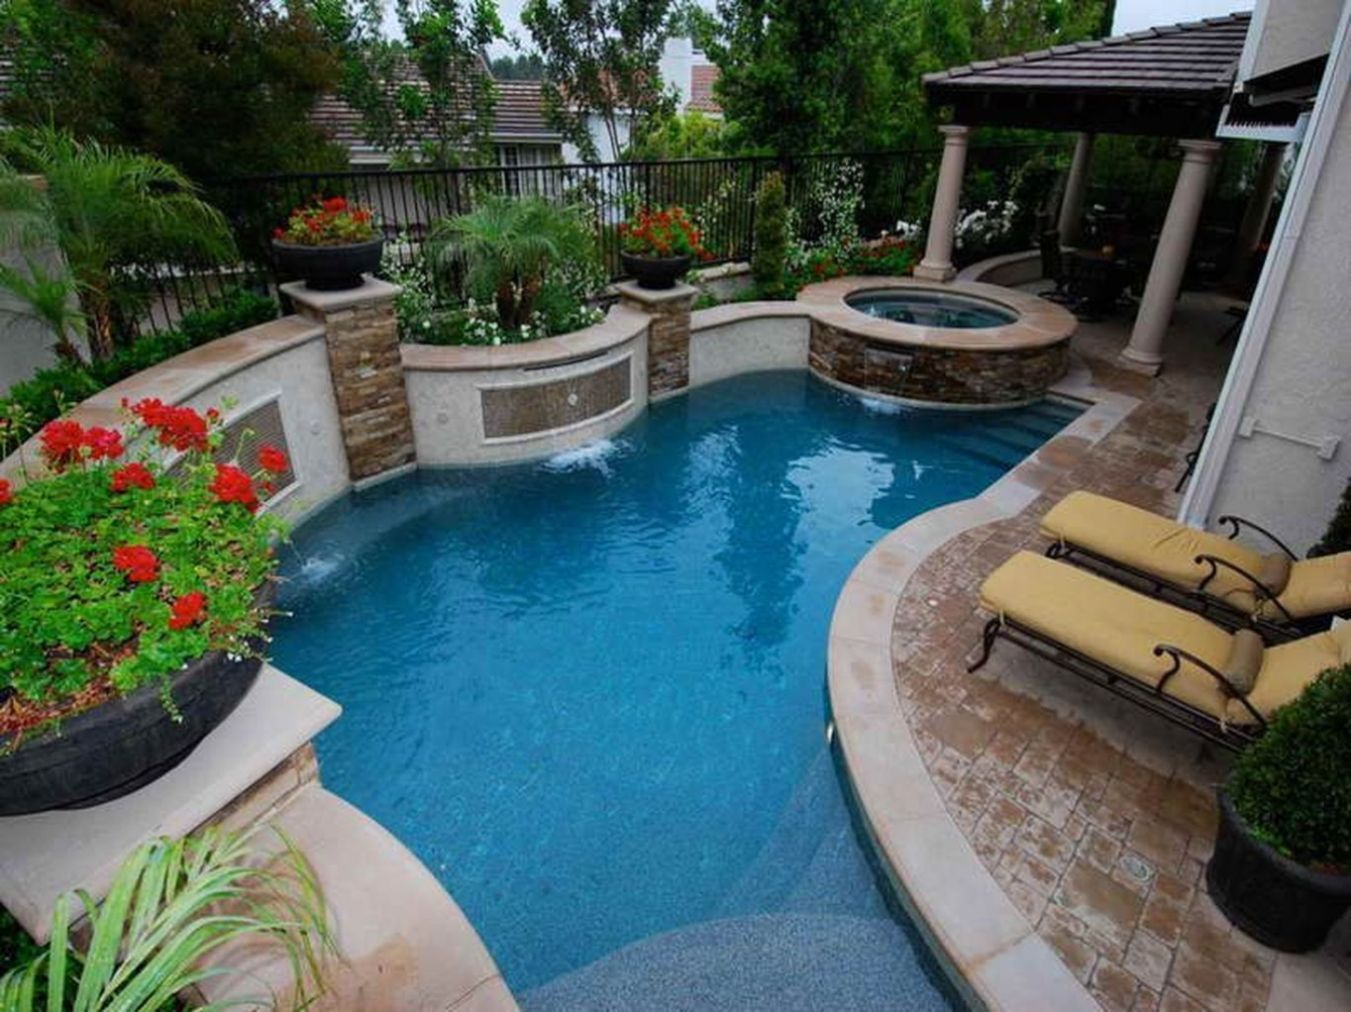 40 Spool Pool For Small Yards 36 Small Pool Design Small Inground Pool Pools For Small Yards